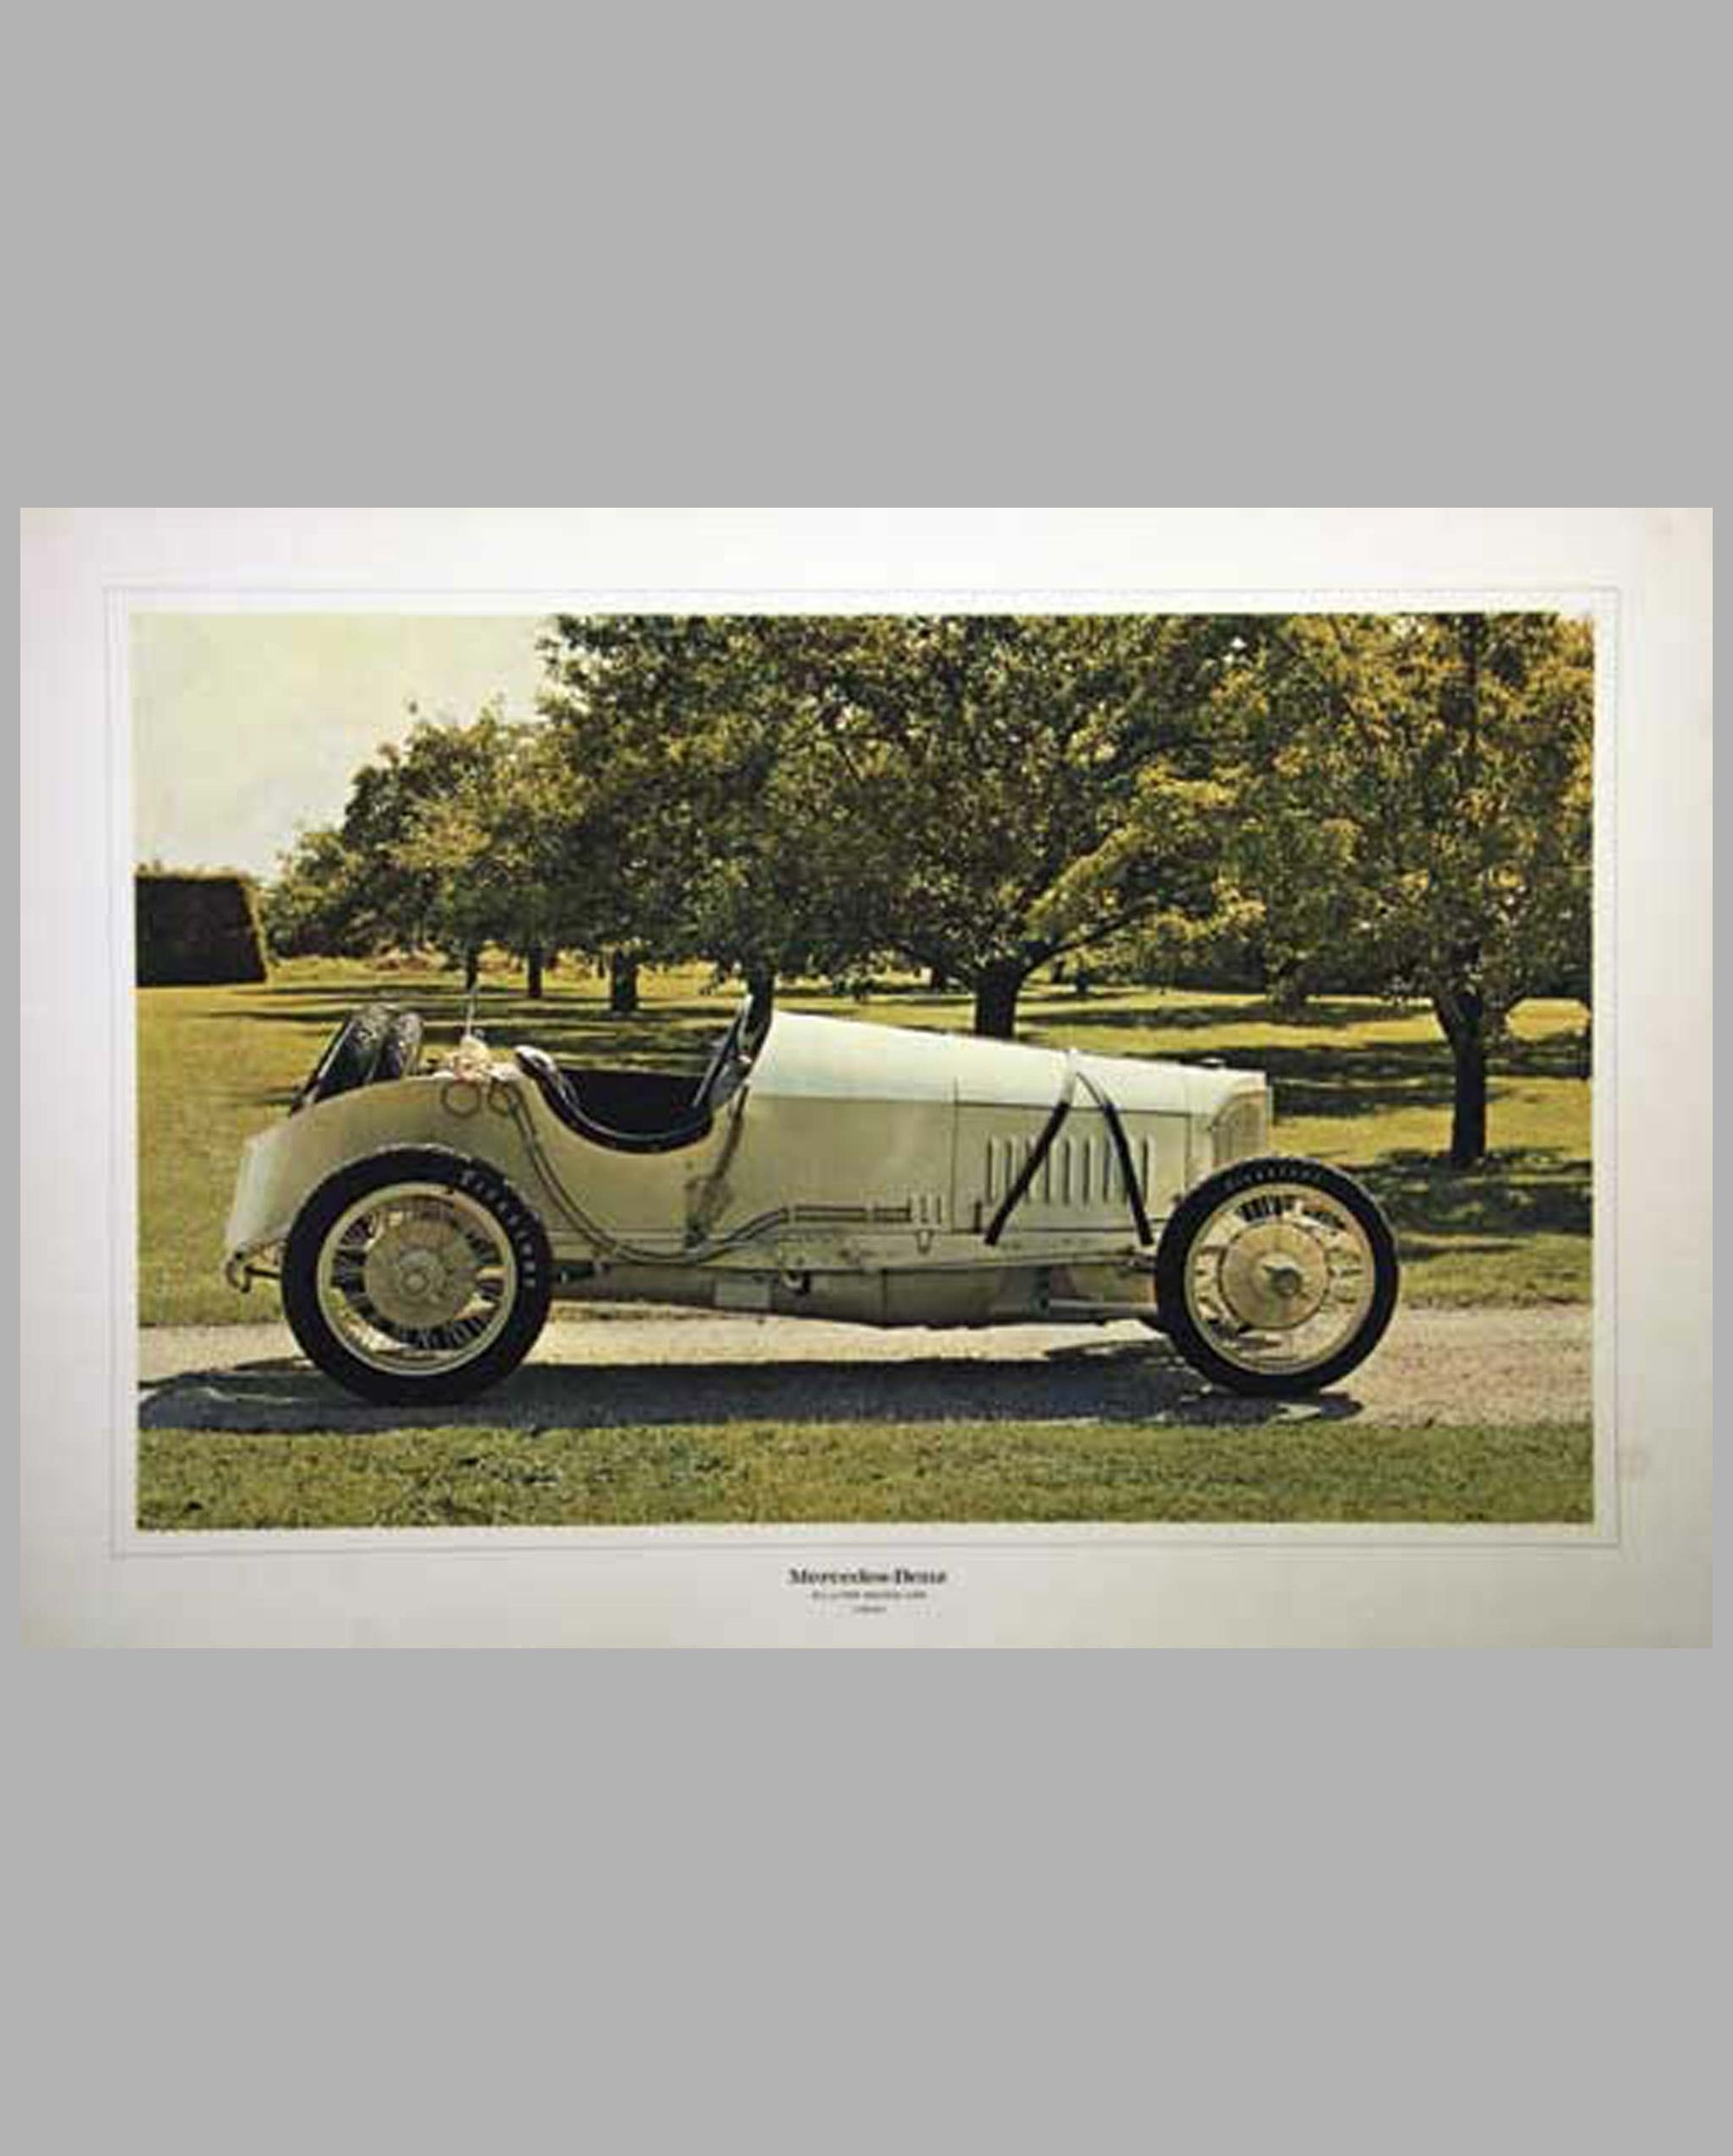 1914 Mercedes 4-1/2 Litre GP Racer photograph